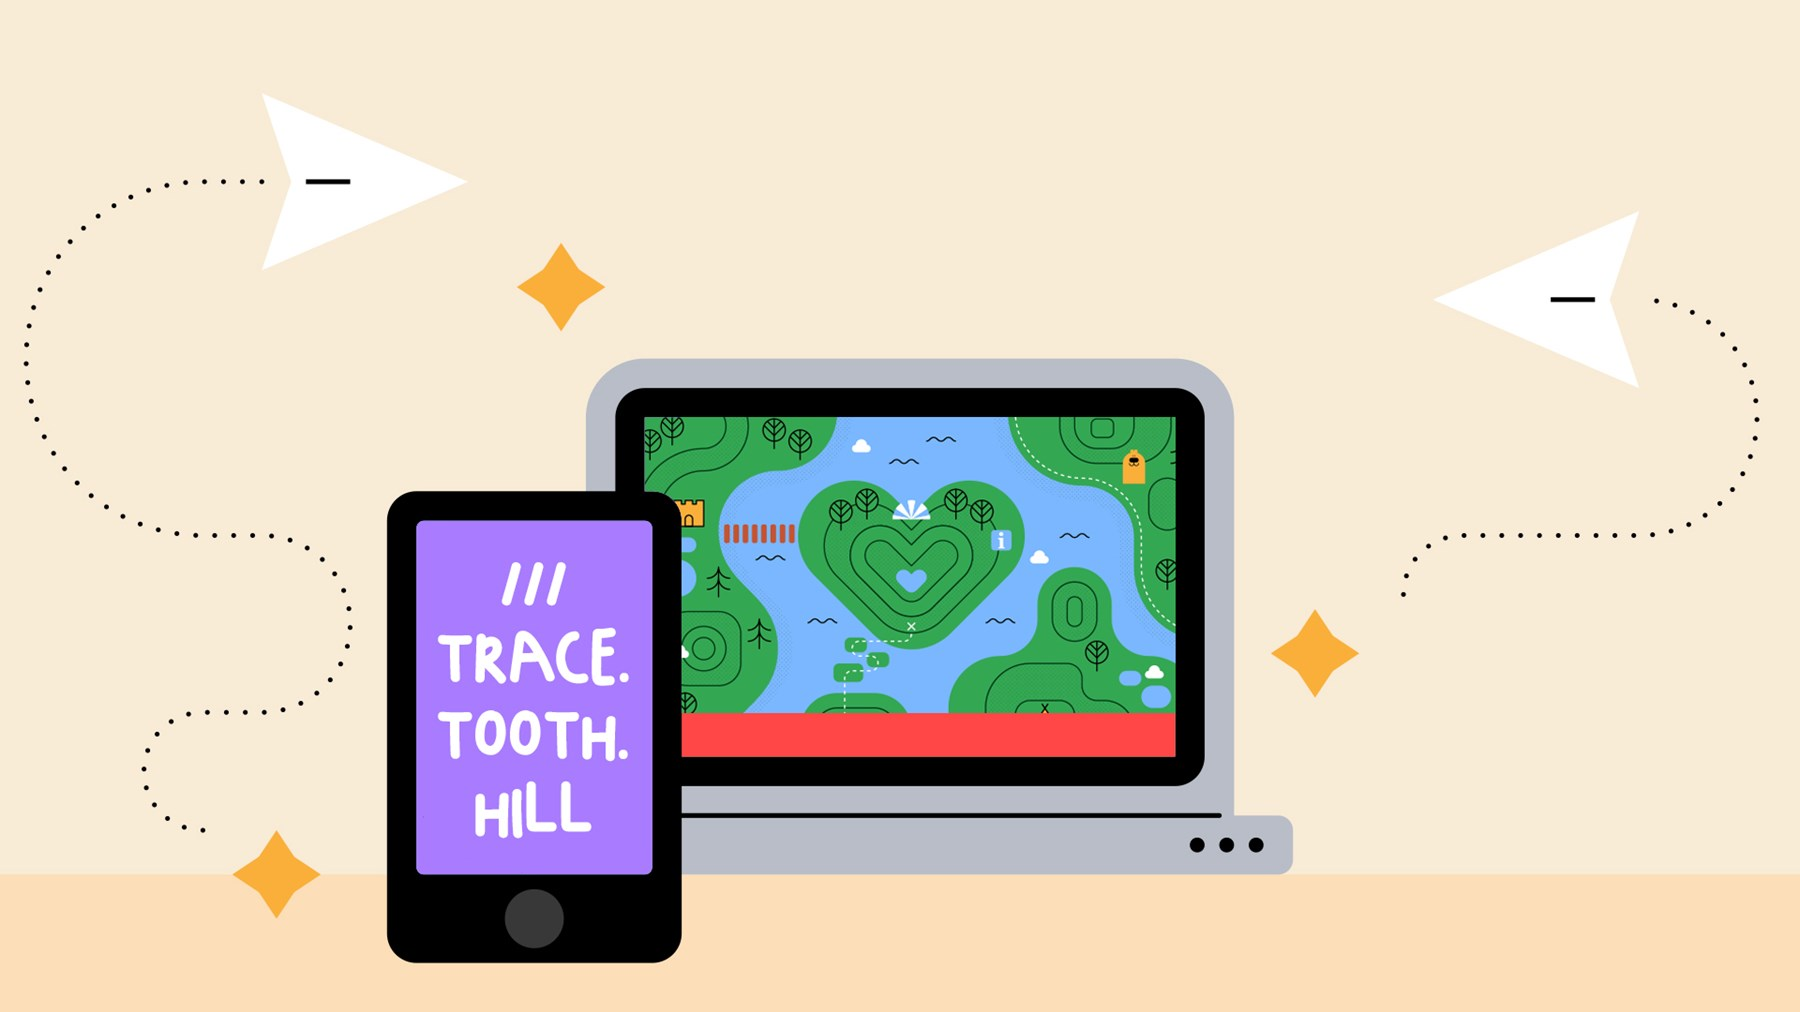 A laptop with an illustration of a heart-shaped woodland area. Leaning against the laptop is a smartphone, with the words 'trace', 'tooth' and 'hill' written on the screen.